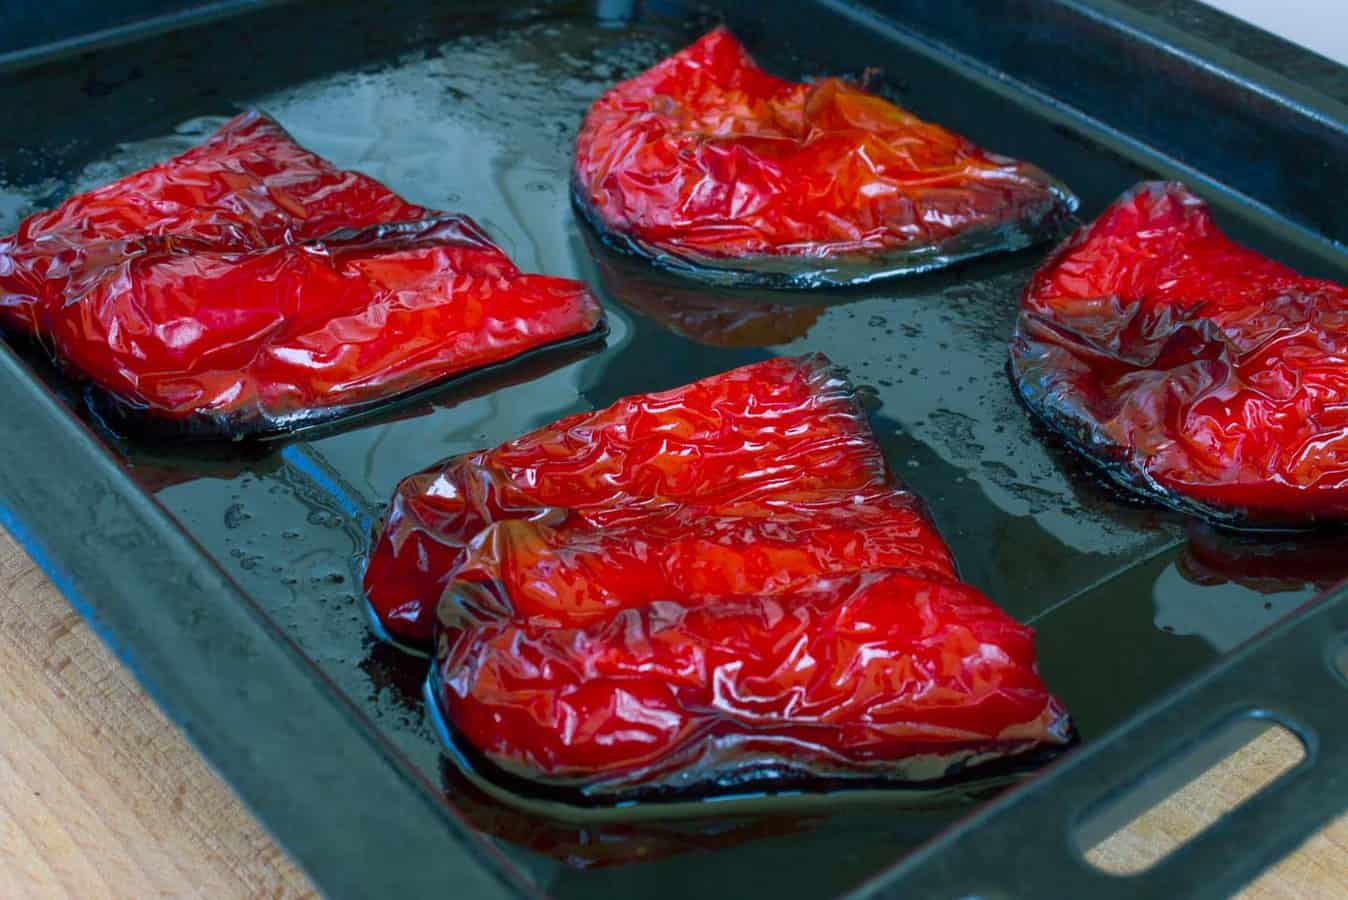 four havles of roasted red peppers on a black baking sheet